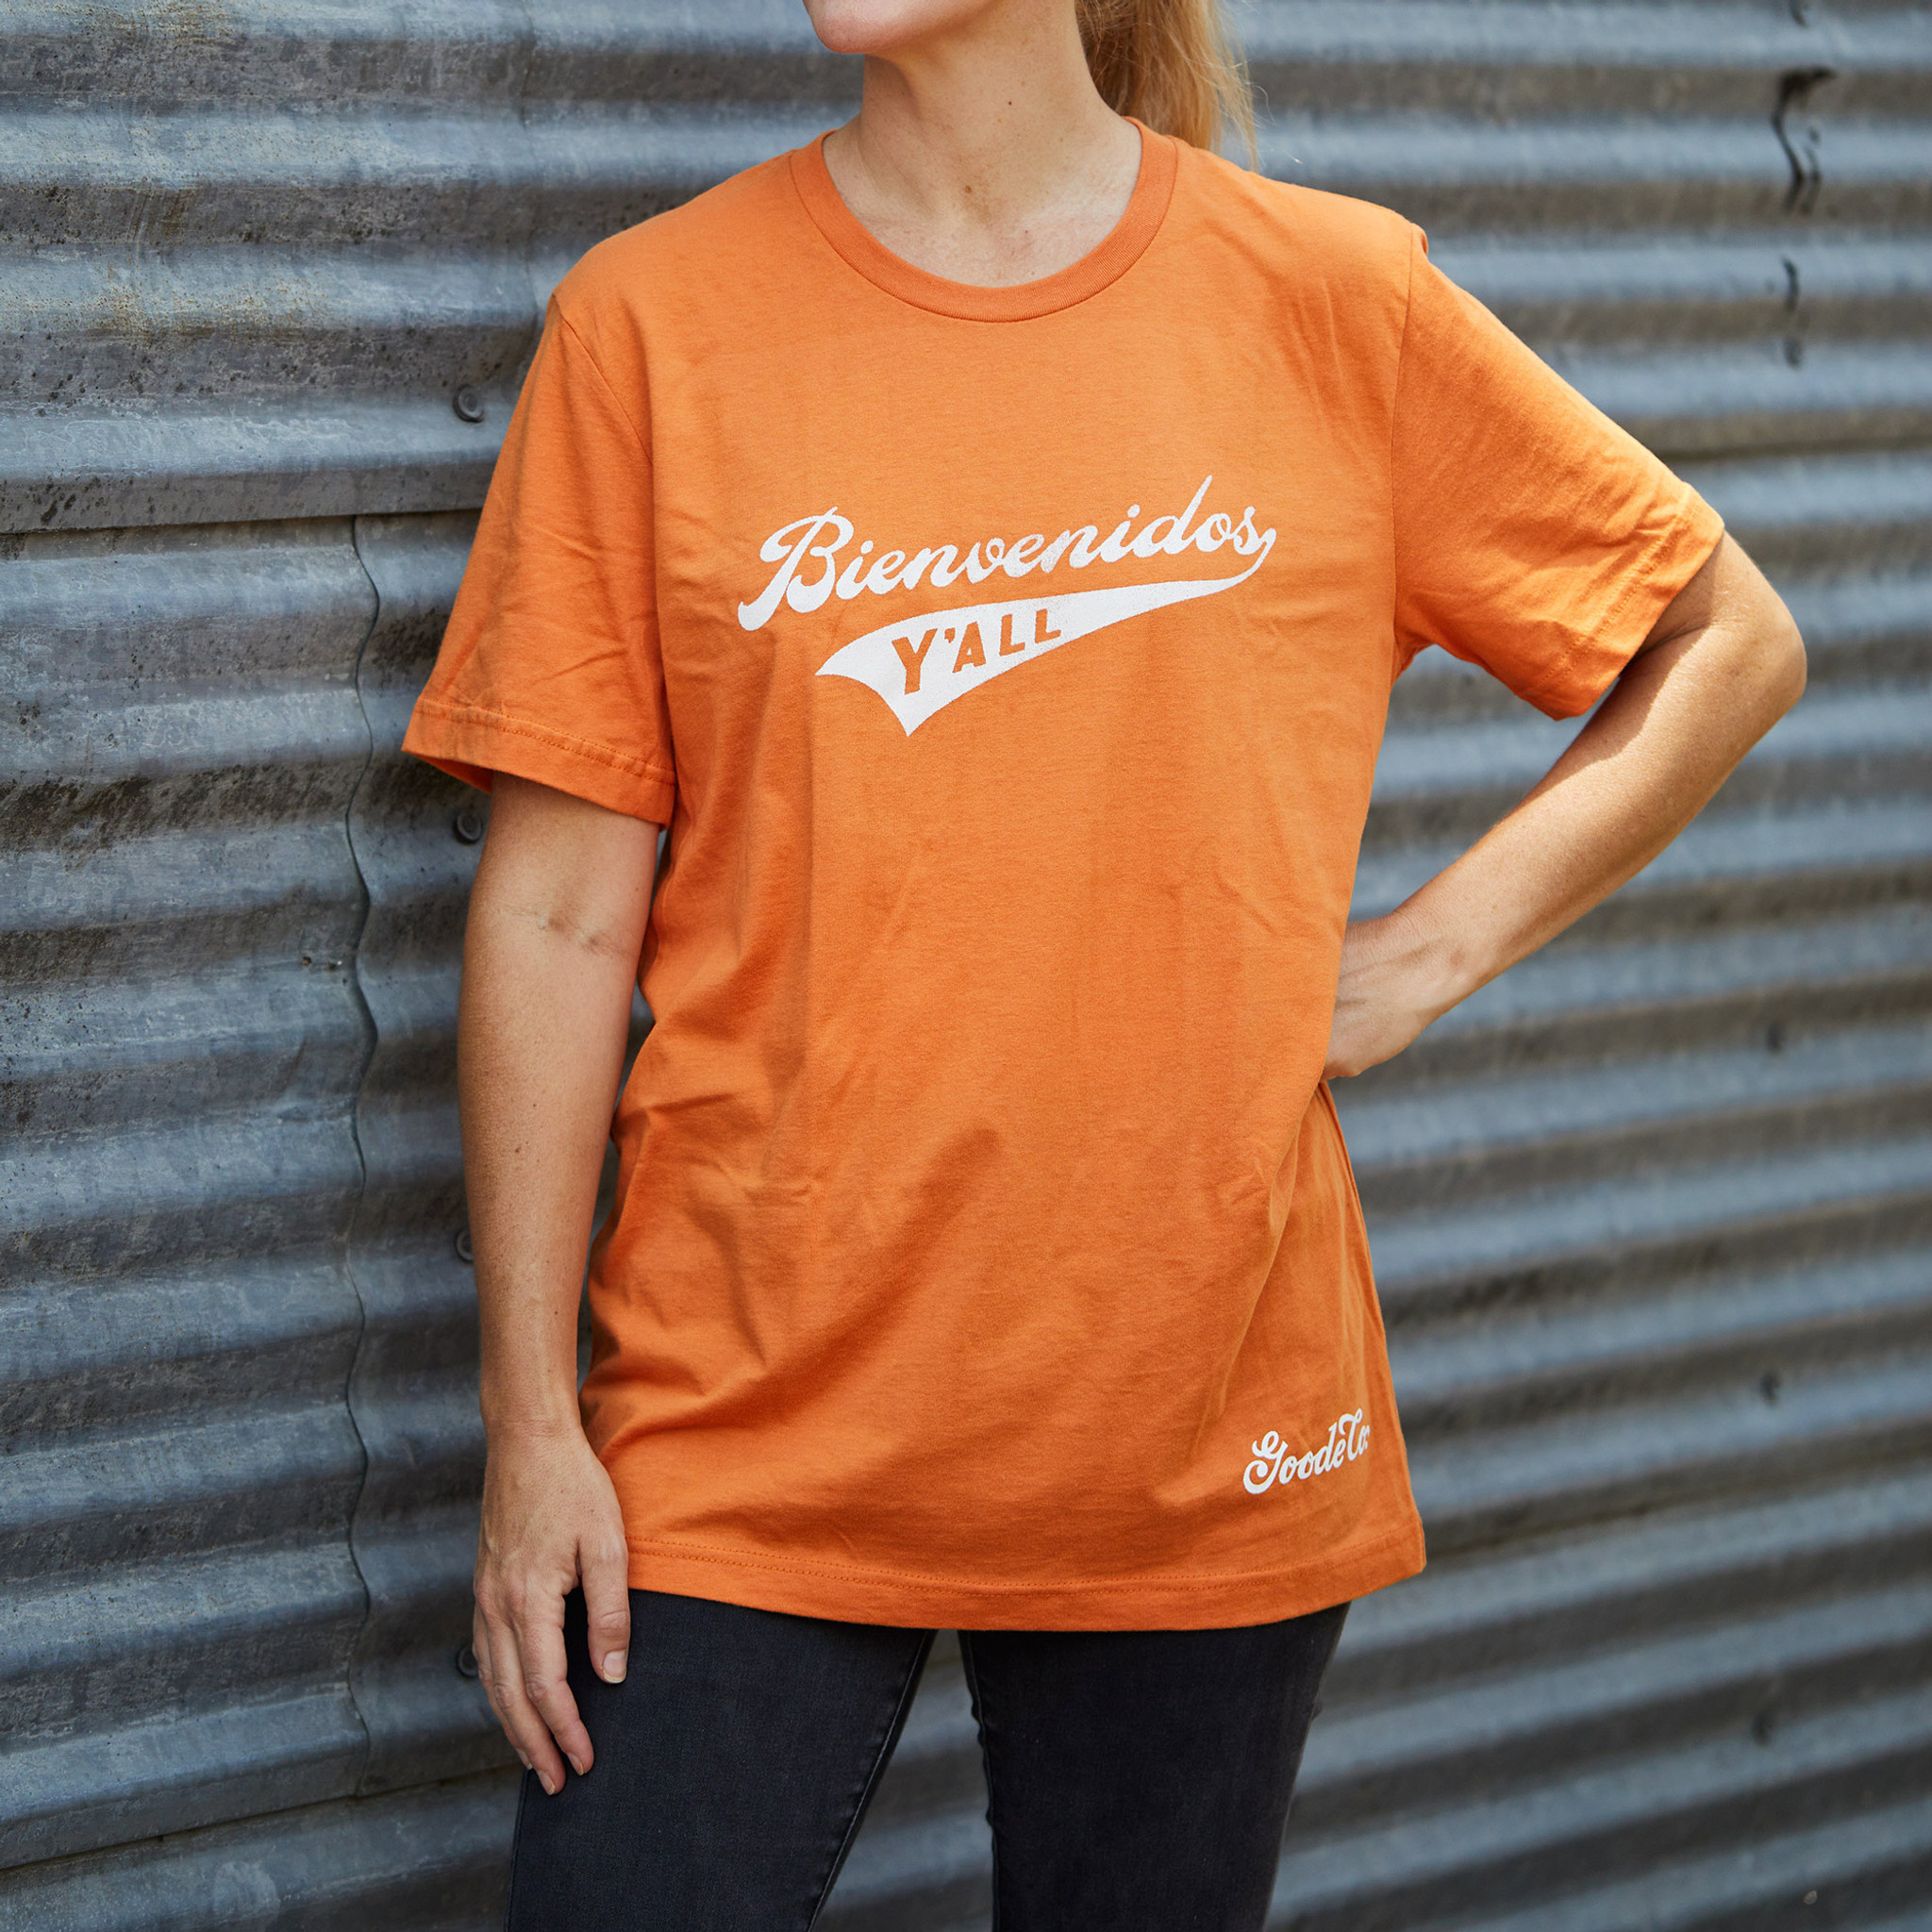 "Proud Texan wearing Goode Co's orange cotton t-shirt that says ""Bienvenidos Y'all"" in white font."